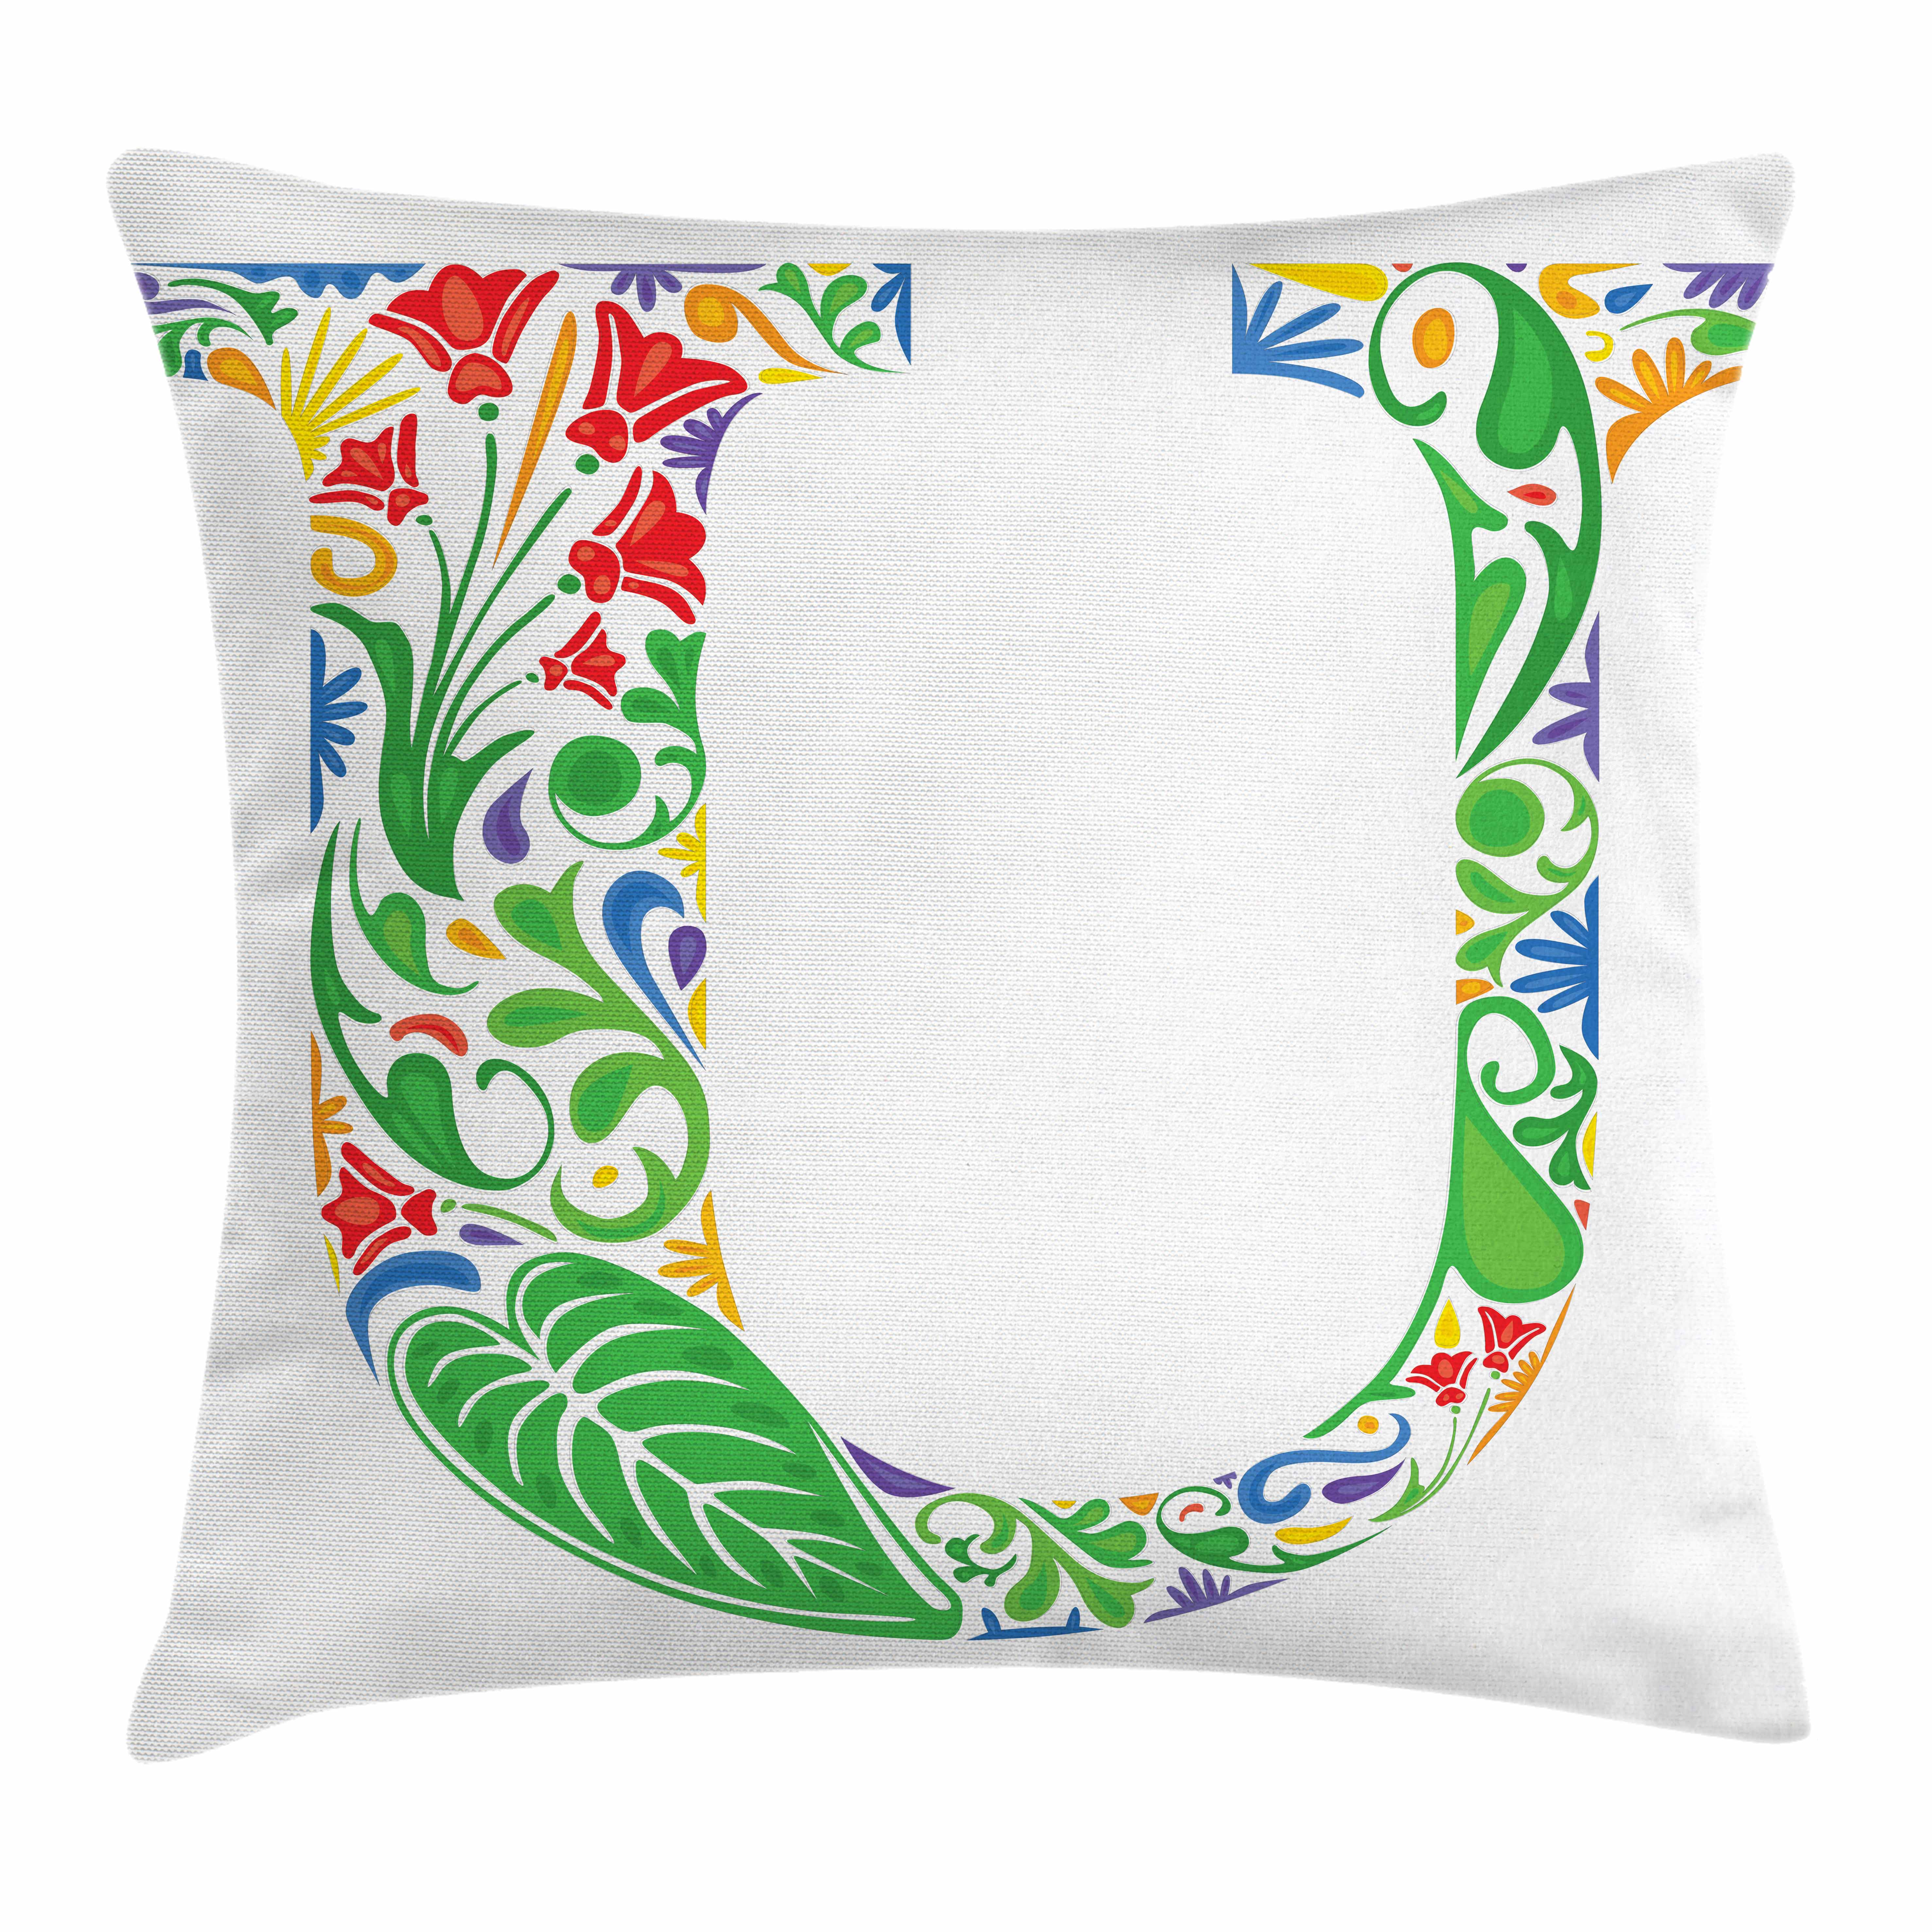 Letter U Throw Pillow Cushion Cover Curvy Floral Elements With U